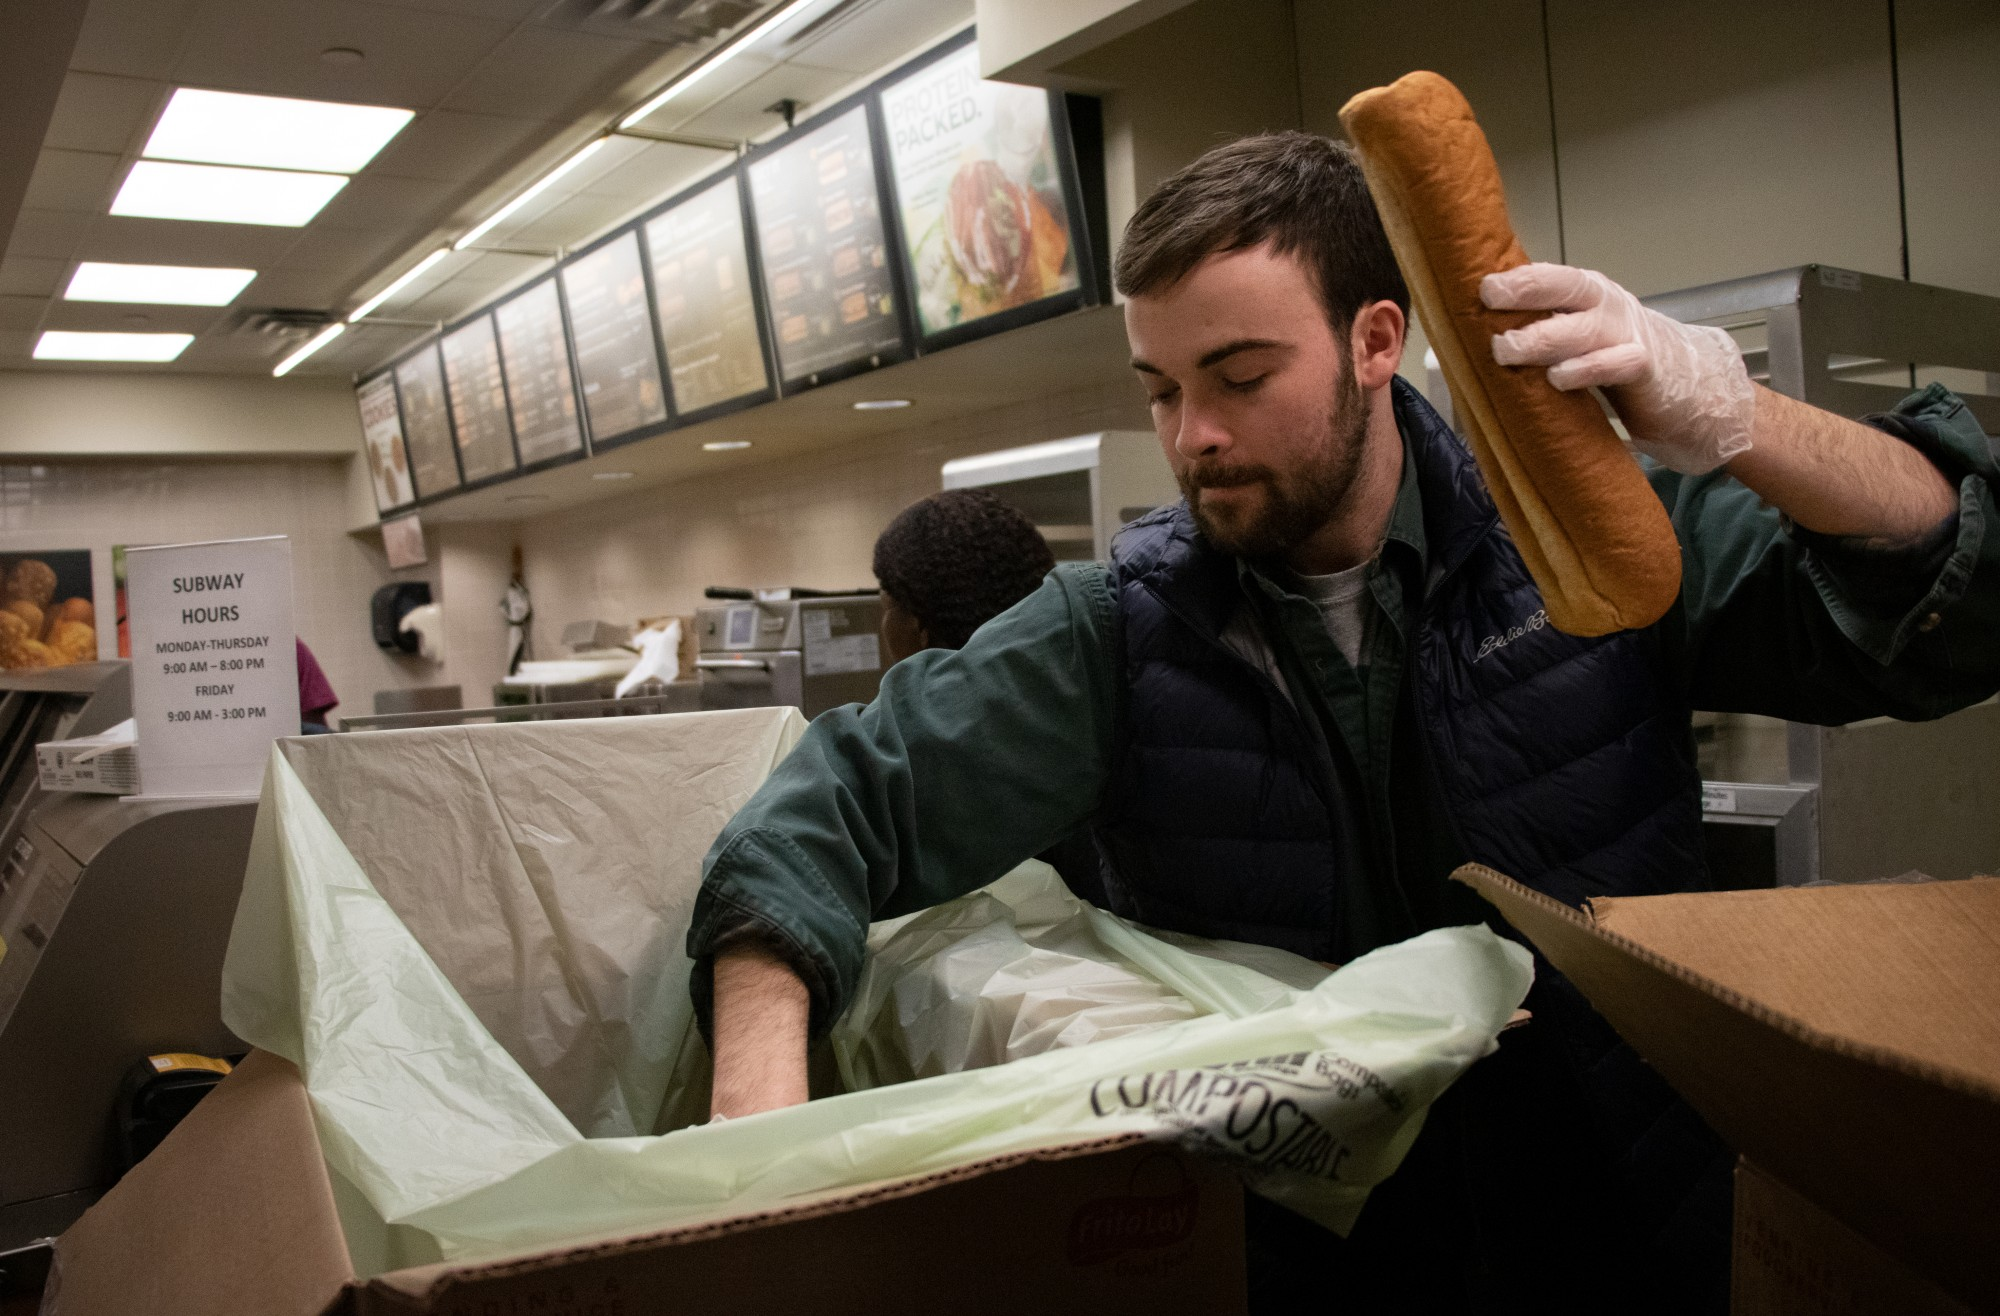 Will Bergstrom collects unused food from the Blegen Hall Subway on Friday, Feb. 28. Every Friday, the Subway location donates their unused food that would otherwise be thrown away.